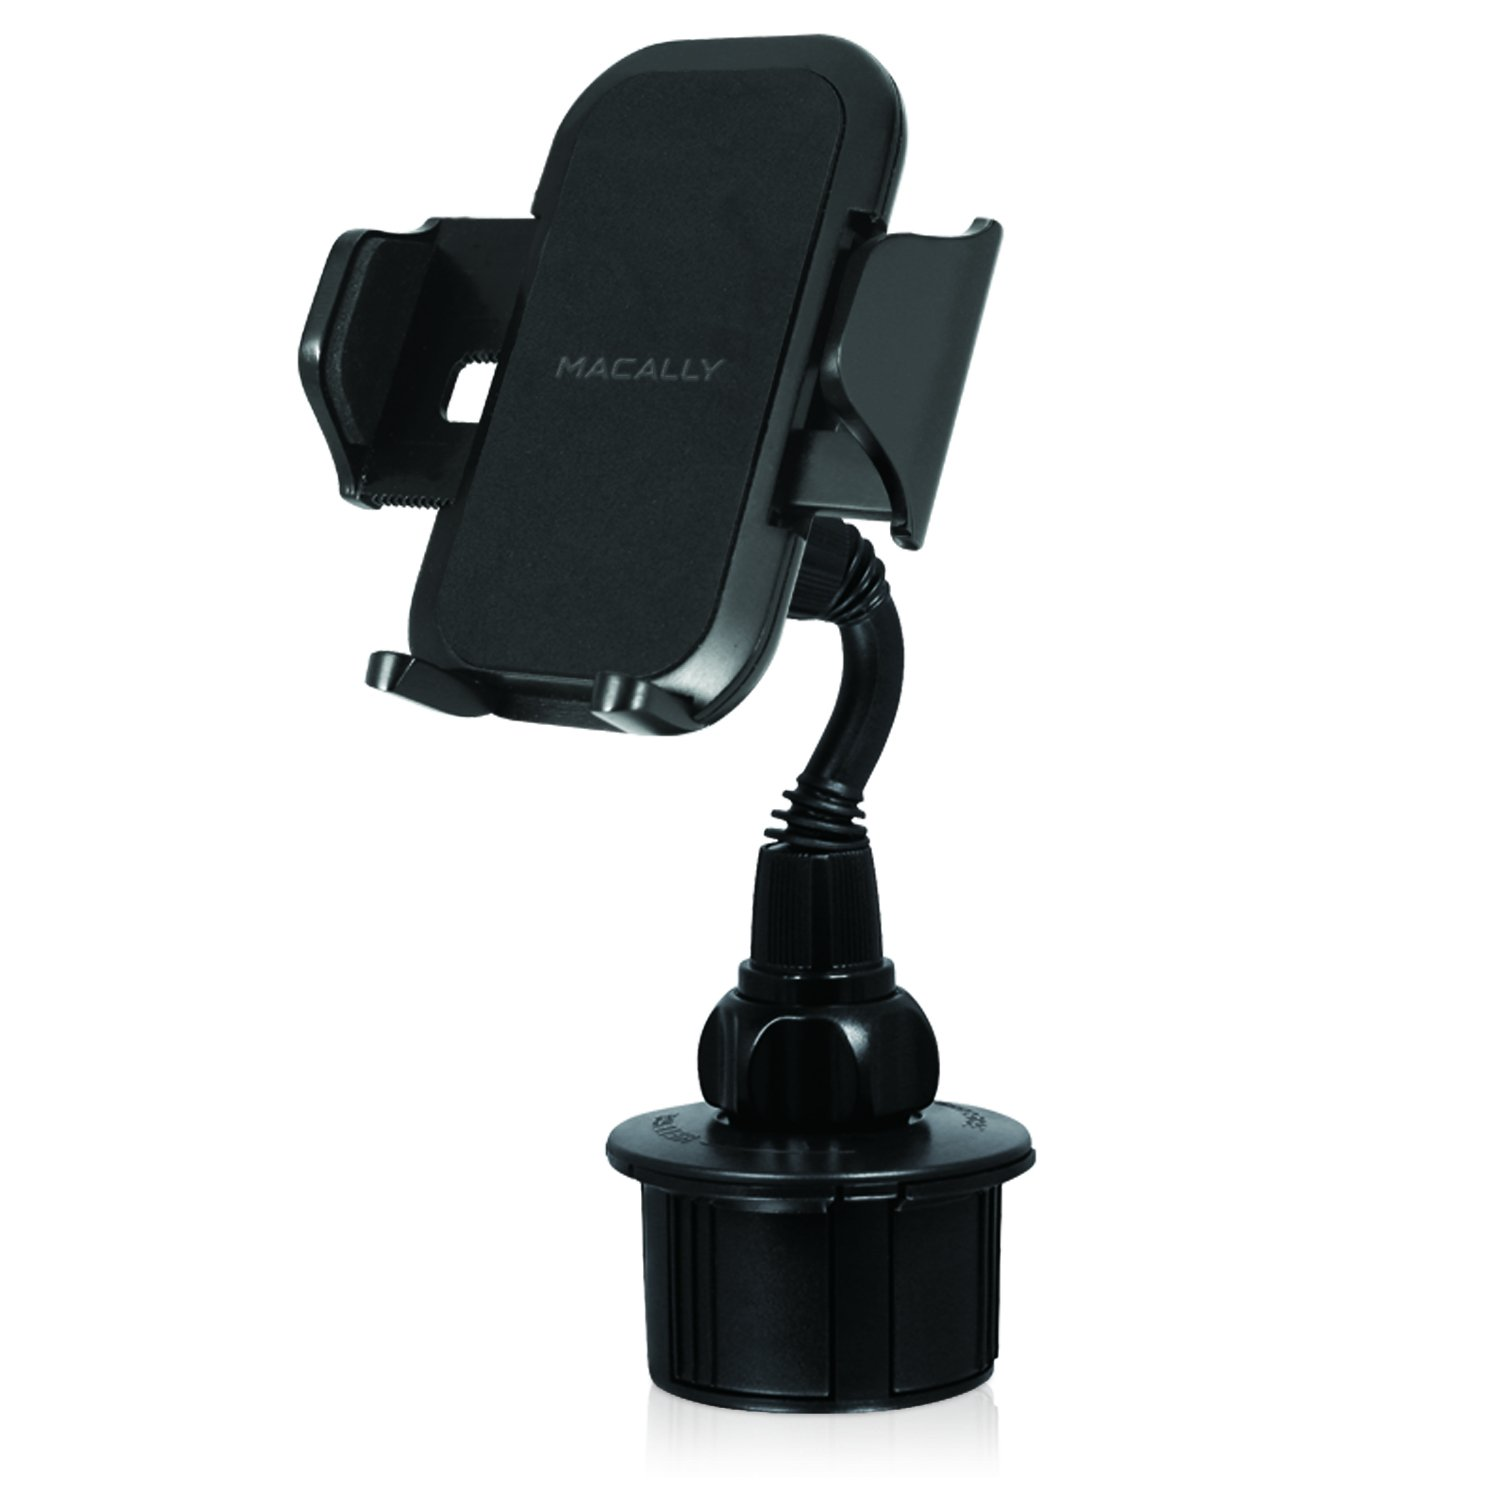 Macally Car Cell Phone Cup Holder Mount for Apple iPhone X 8 8+ 7 7 Plus 6s 6 SE, Samsung S9 S9+Note 8 Galaxy S8/S8+, LG, Nexus, Smartphones, GPS, etc. (MCUP)